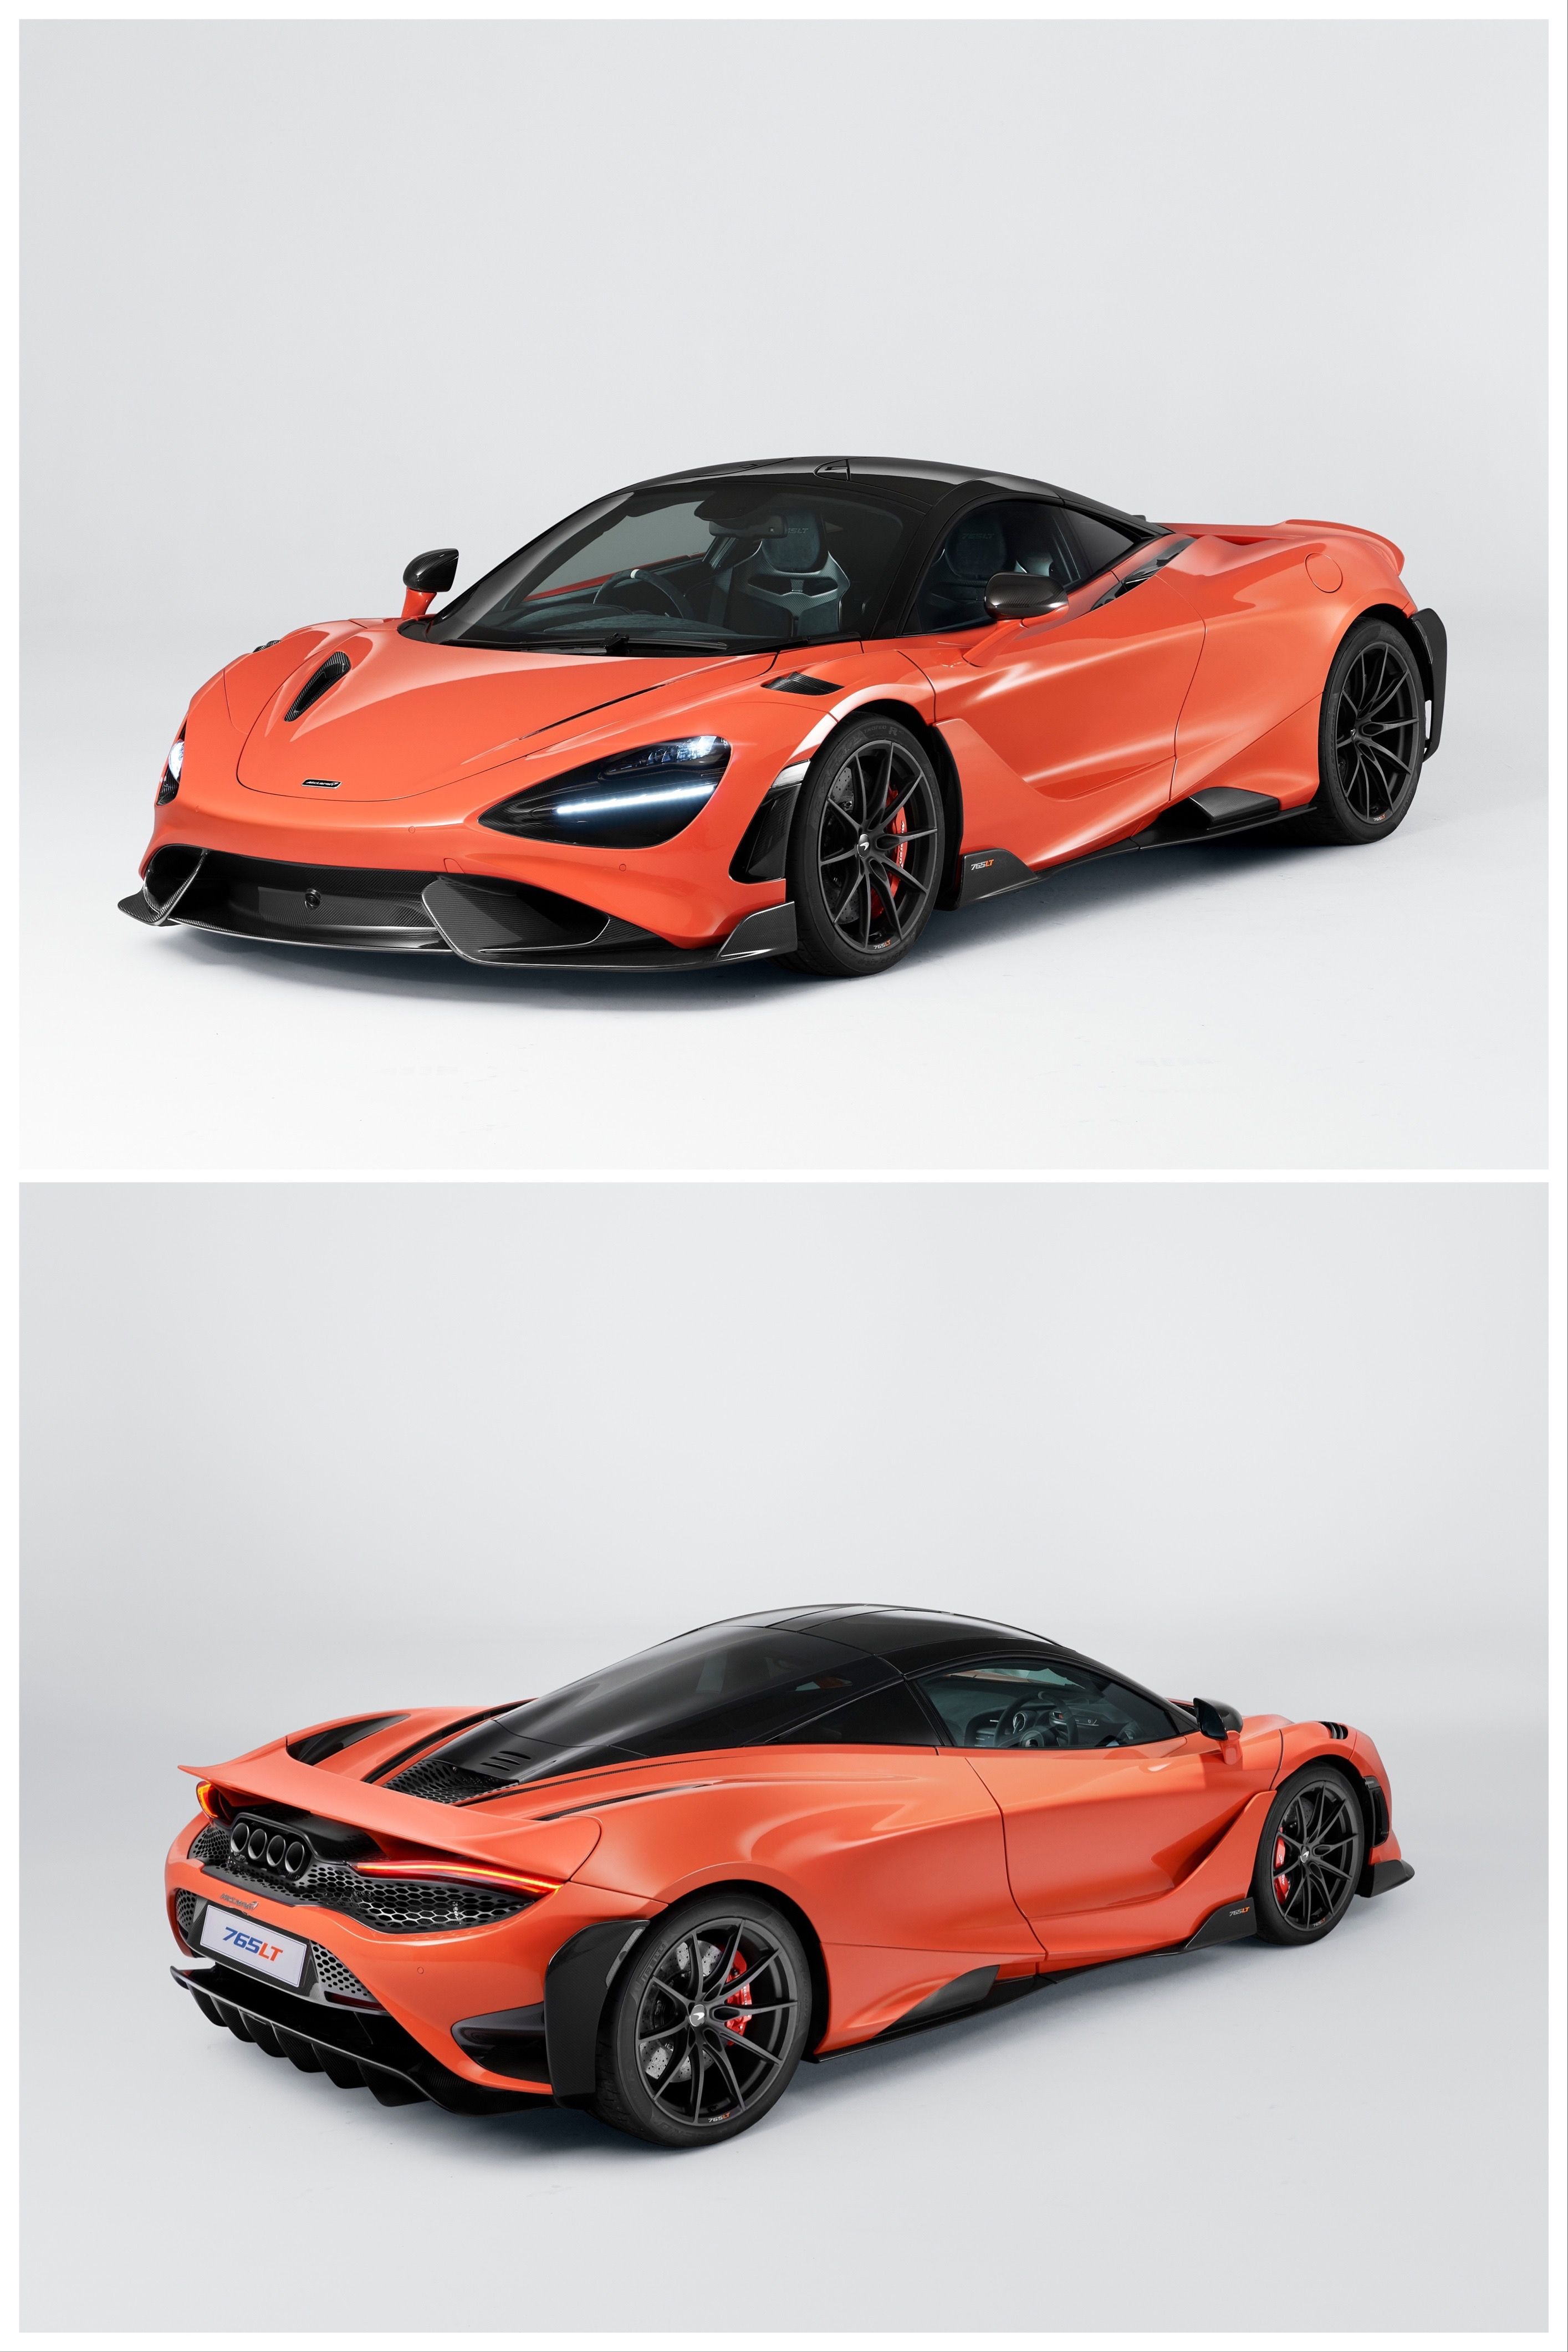 New 2021 Mclaren 765lt Arrives With 755 Hp Less Weight And 0 60 In 2 7 Seconds Mclaren Car Collection Super Luxury Cars